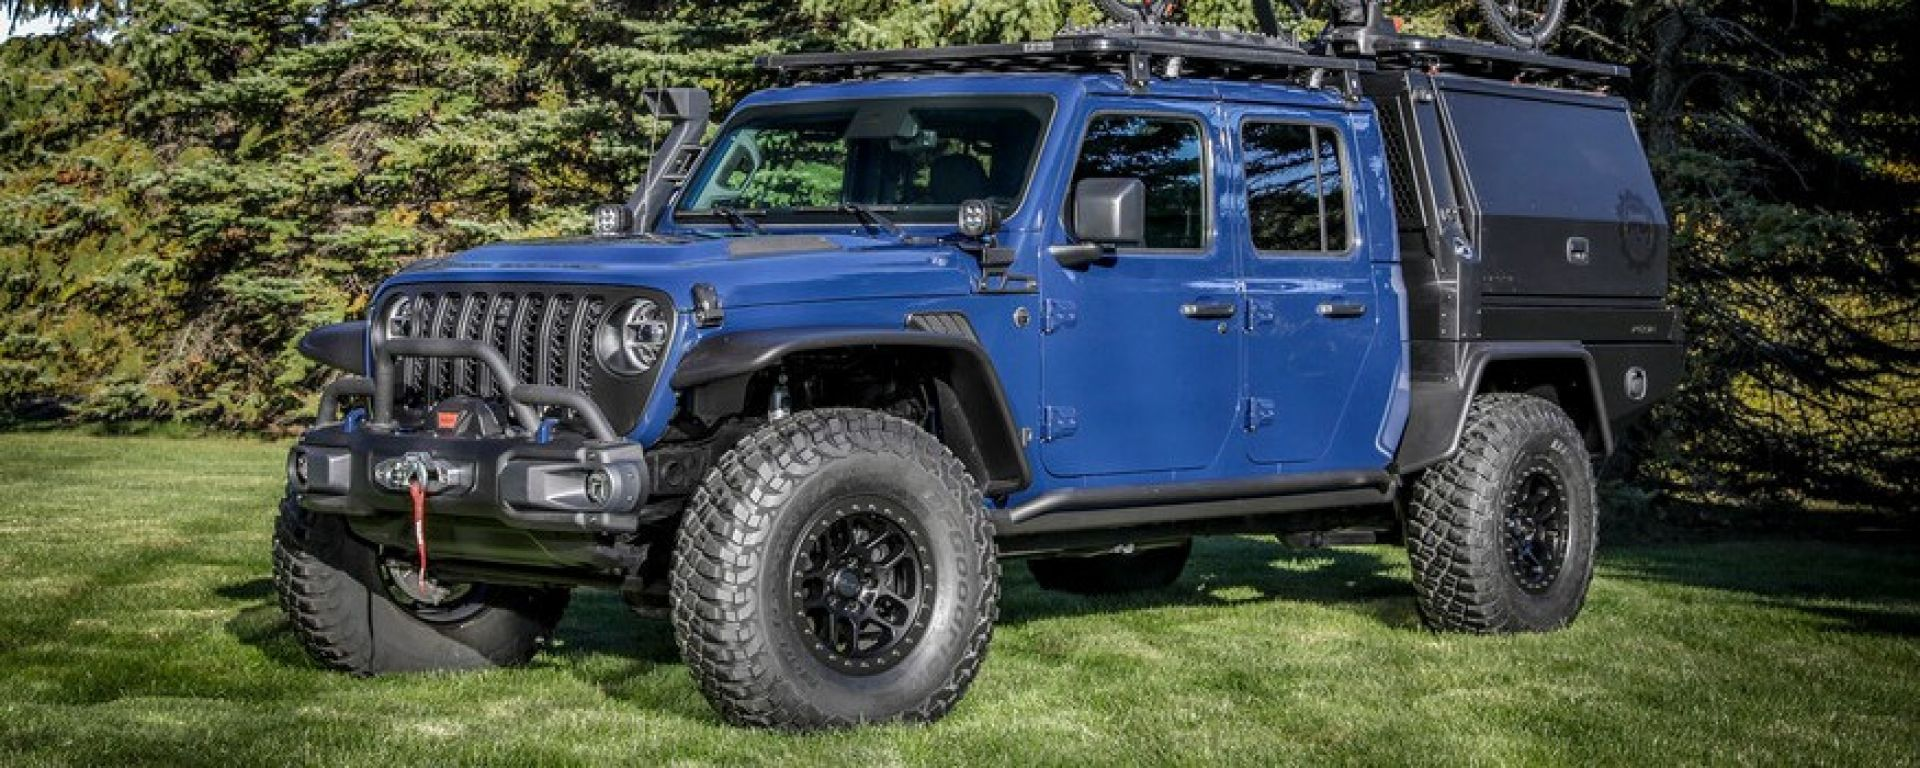 Jeep Gladiator Top Dog: frontale